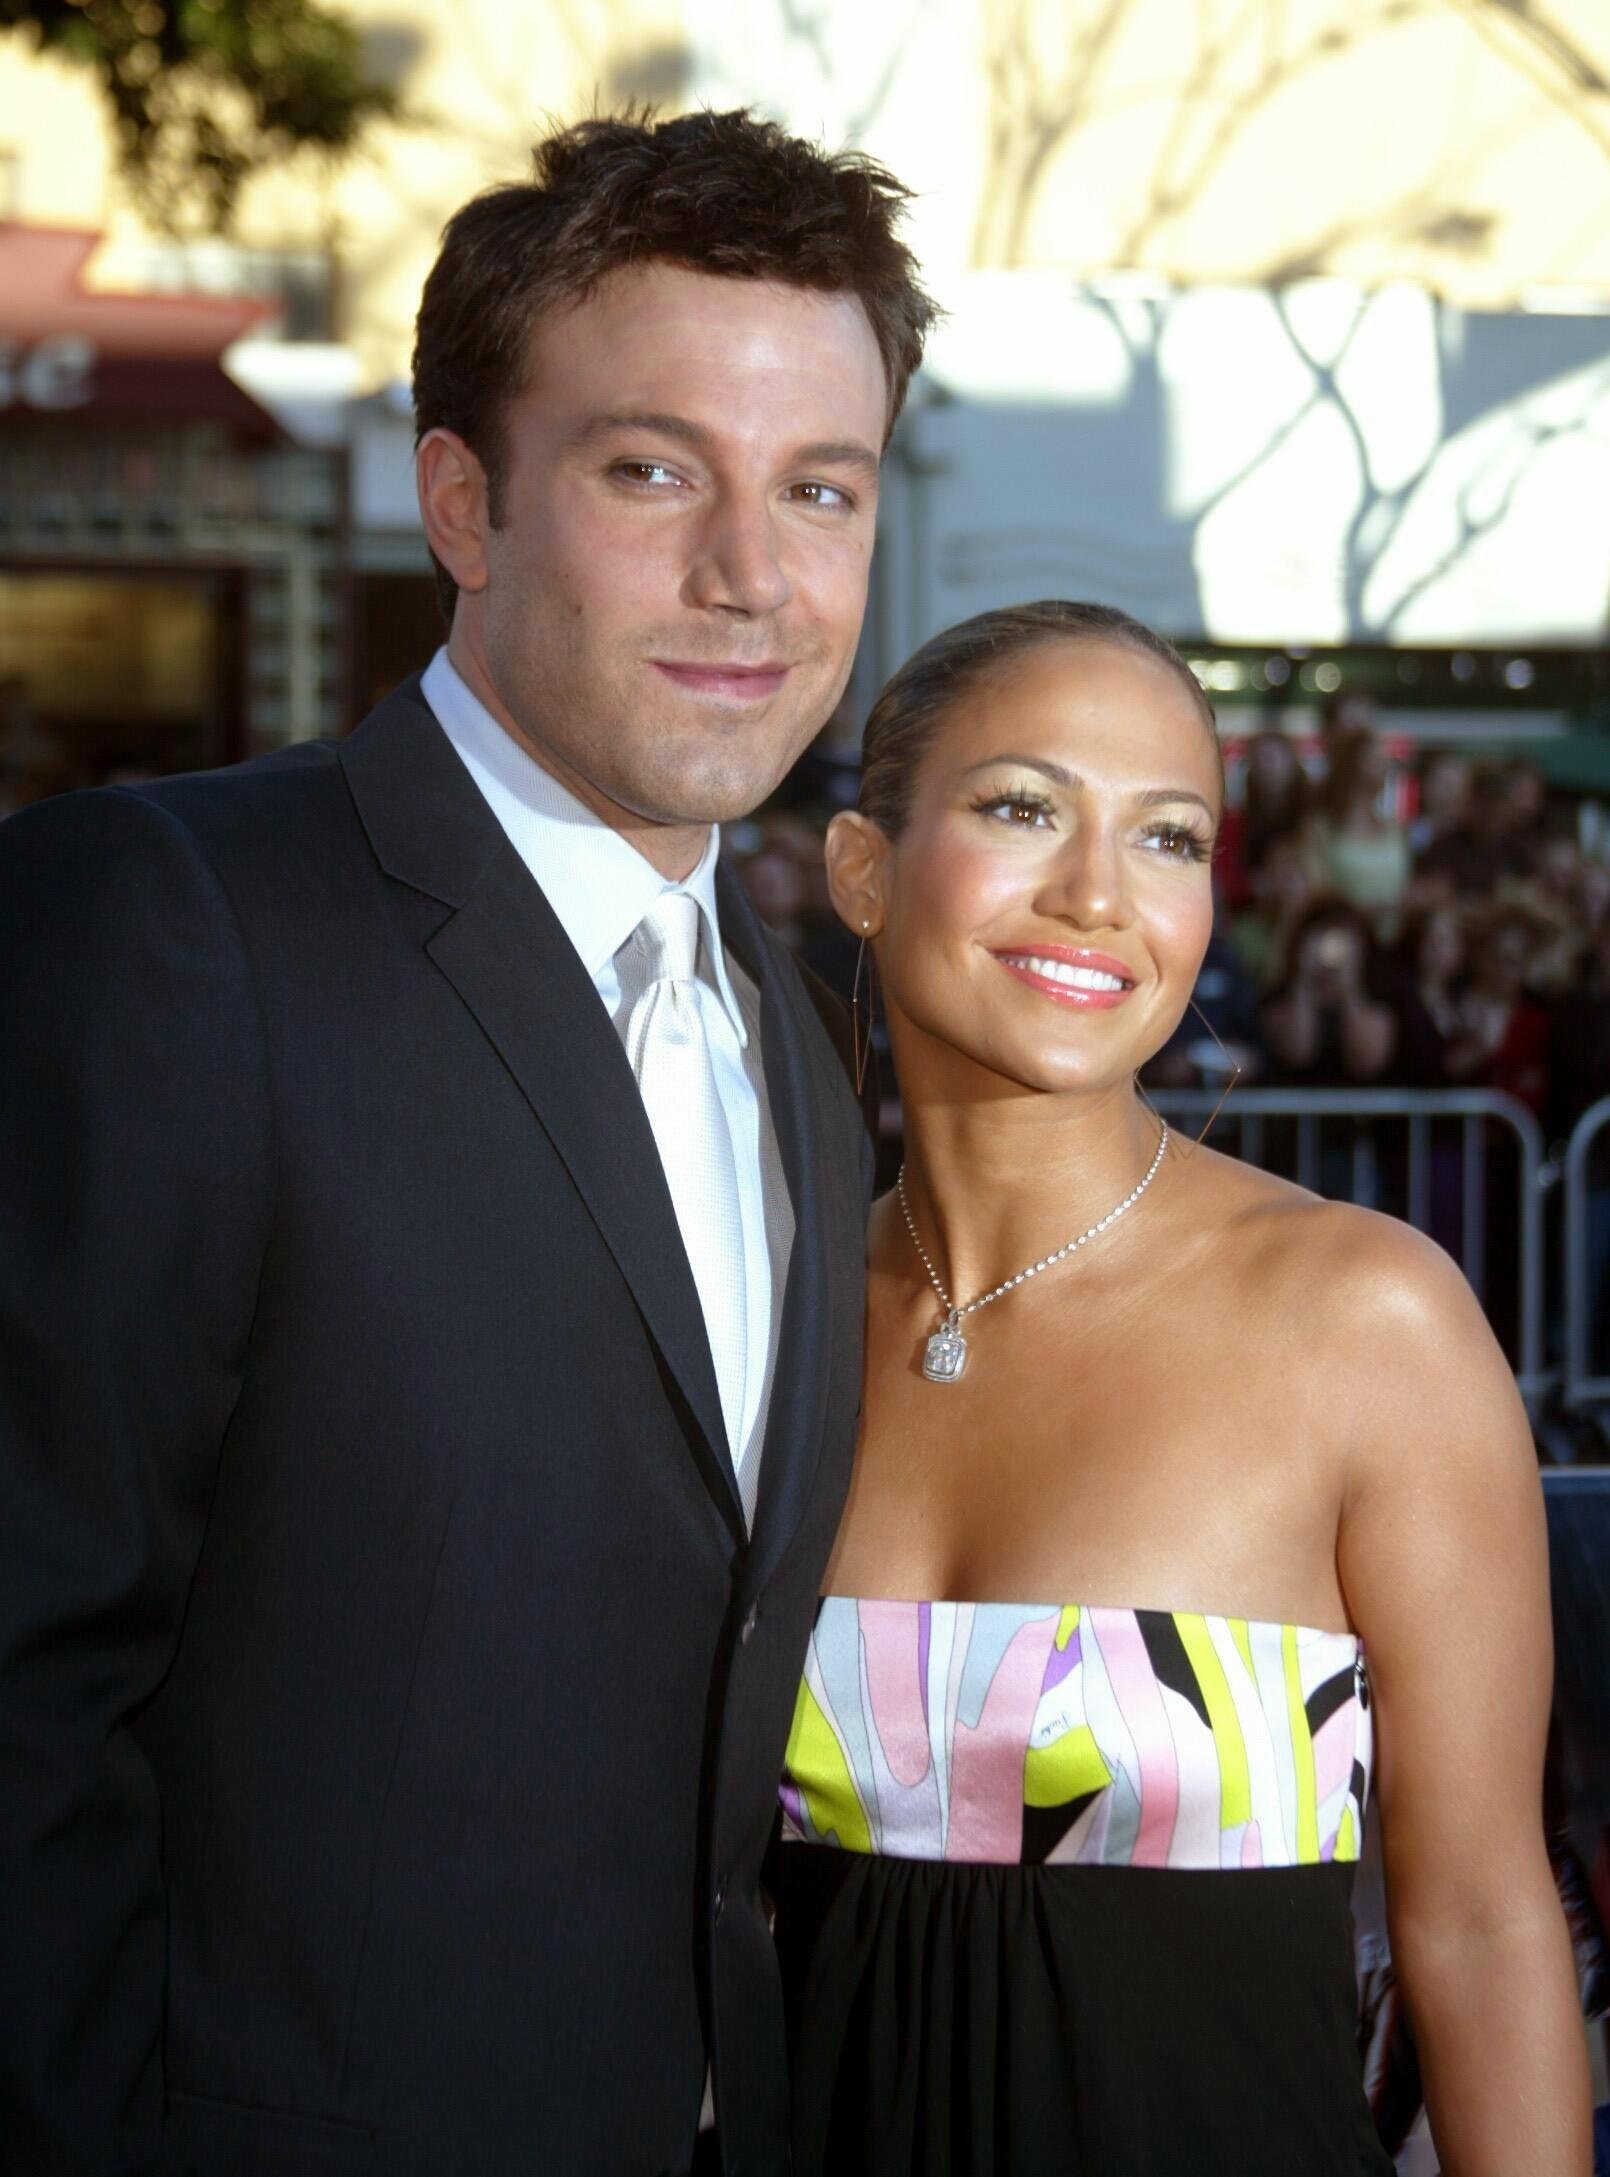 """The musician and actress Jennifer Lopez and her fianc', the actor Ben Affleck, arrive on February 9, 2003 for the premiere of the film """"Daredevil"""" at the Mann Village Theater in Los Angeles. 